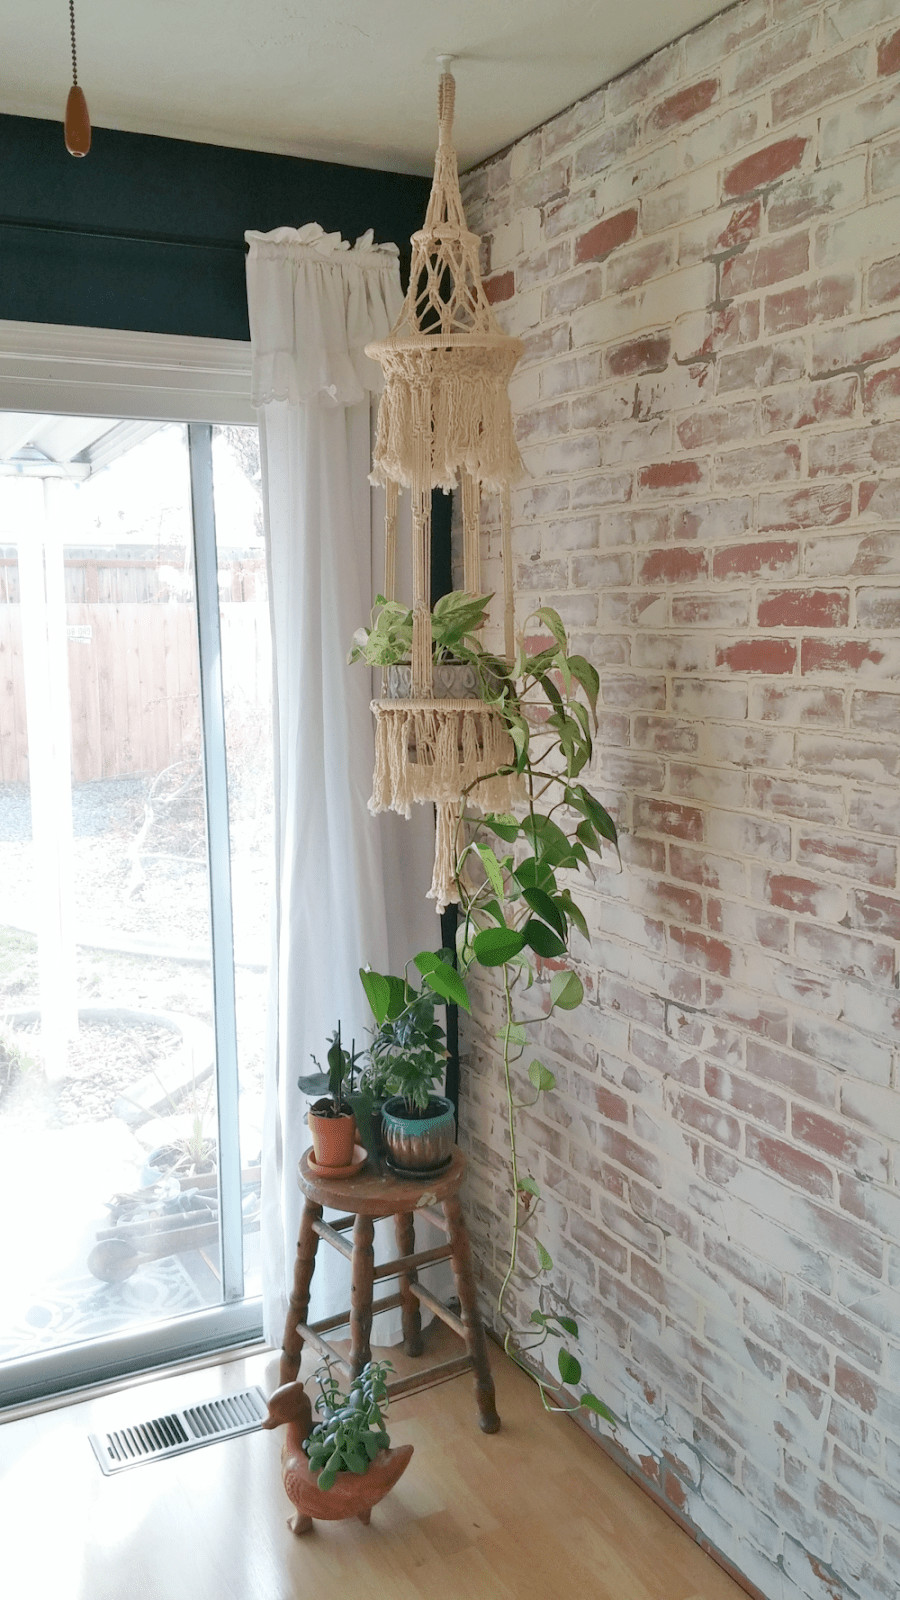 Best ideas about Faux Brick Wall DIY . Save or Pin Faux Brick Wall With German Smear Easy DIY to Add Brick Now.